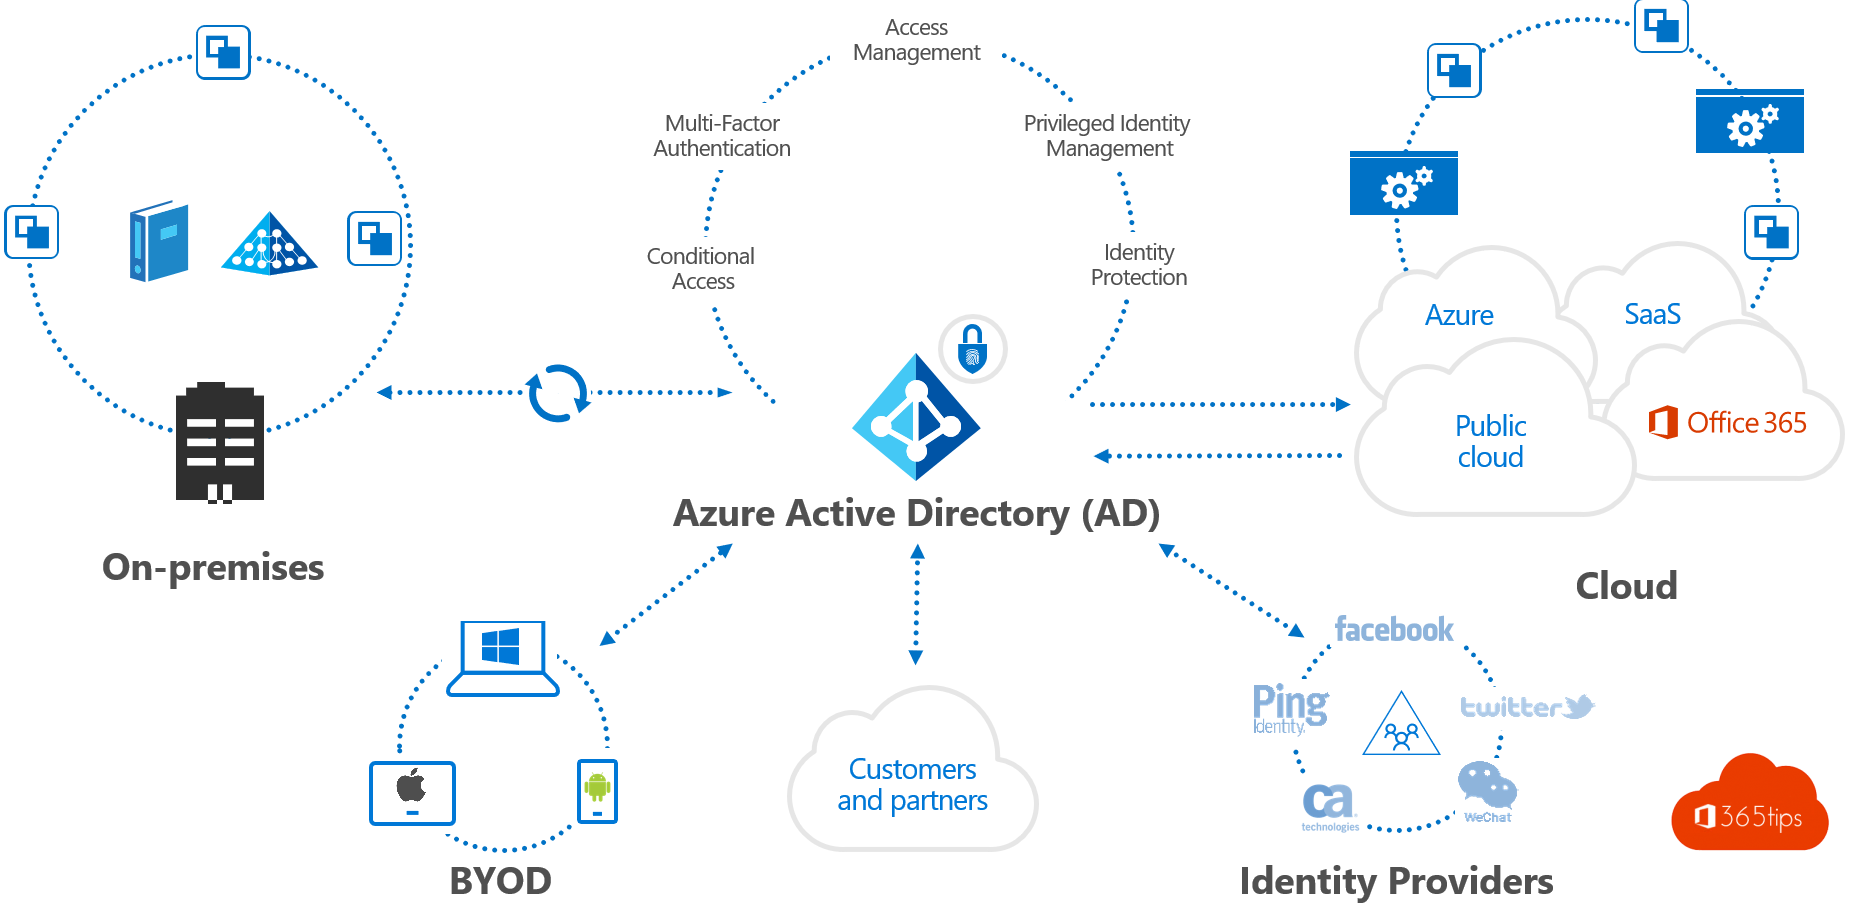 Gebruikers, servers & workstations analyse in Active Directory